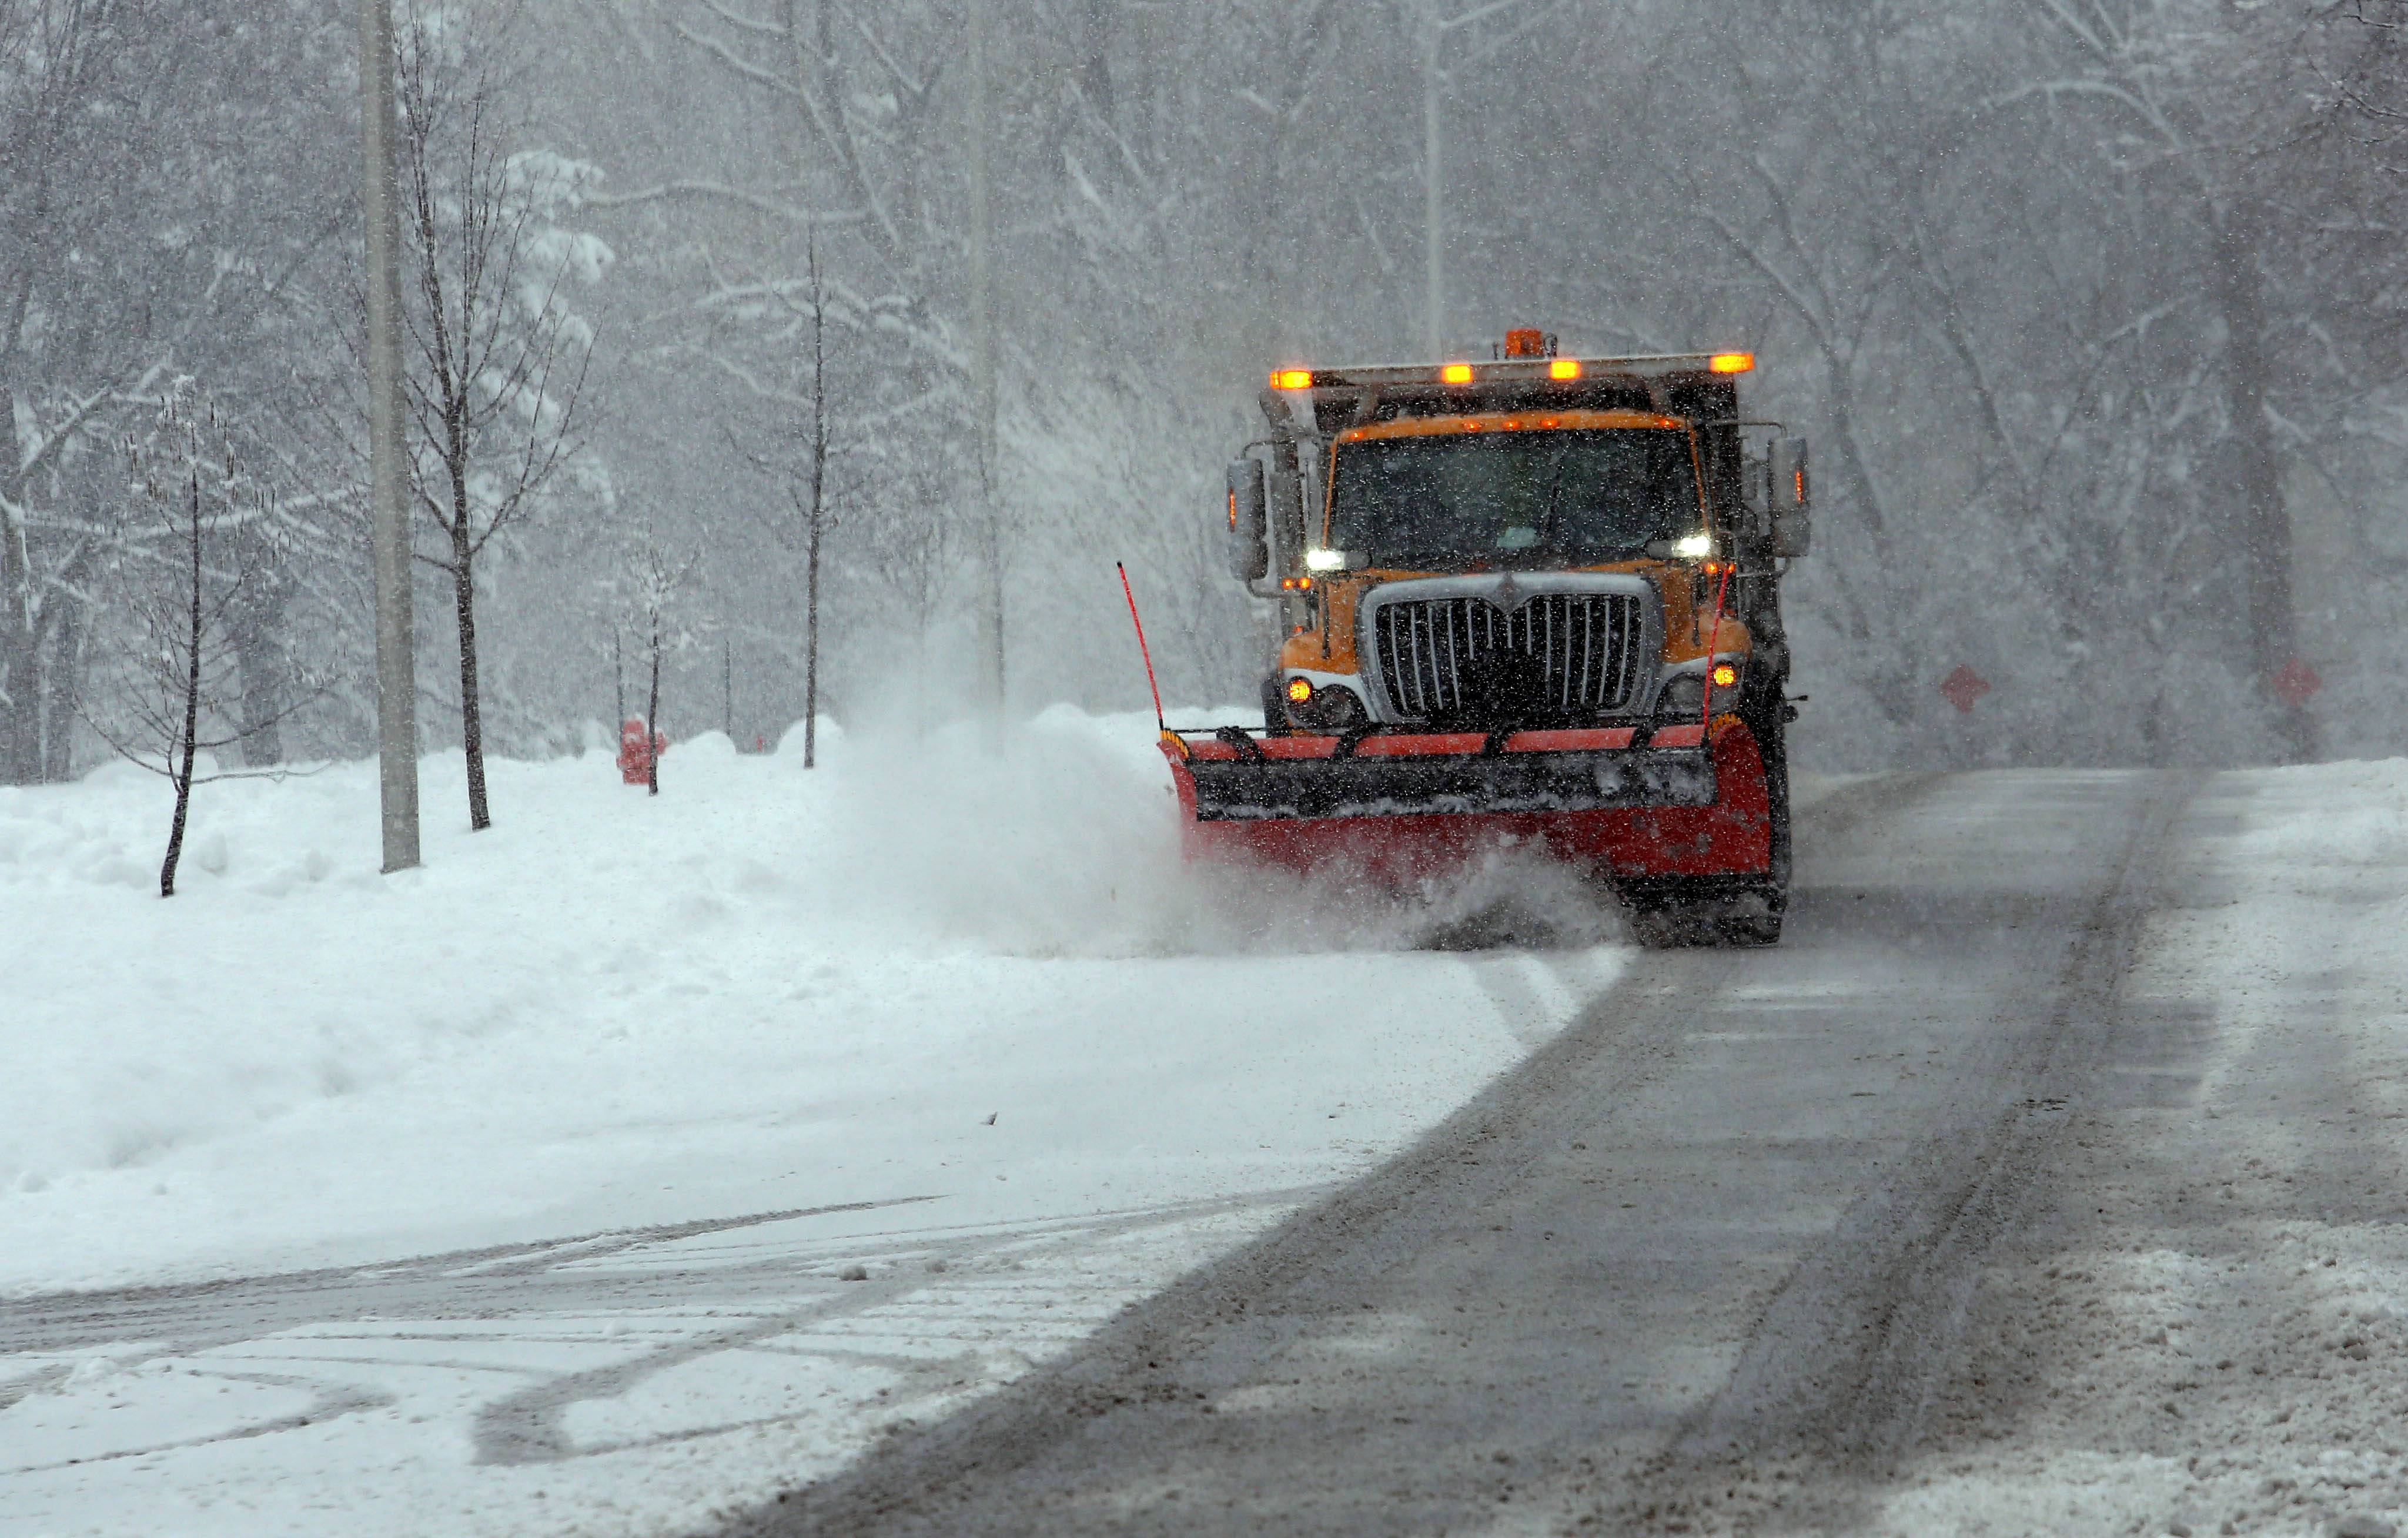 The work of plowing snow and managing streets under the jurisdiction of Naperville and Lisle townships is supposed to be consolidated into one new governmental entity by 2021. But the merger, approved by voters in April, could be in for a twist if Naperville Township gives voters a different option under a new state law.